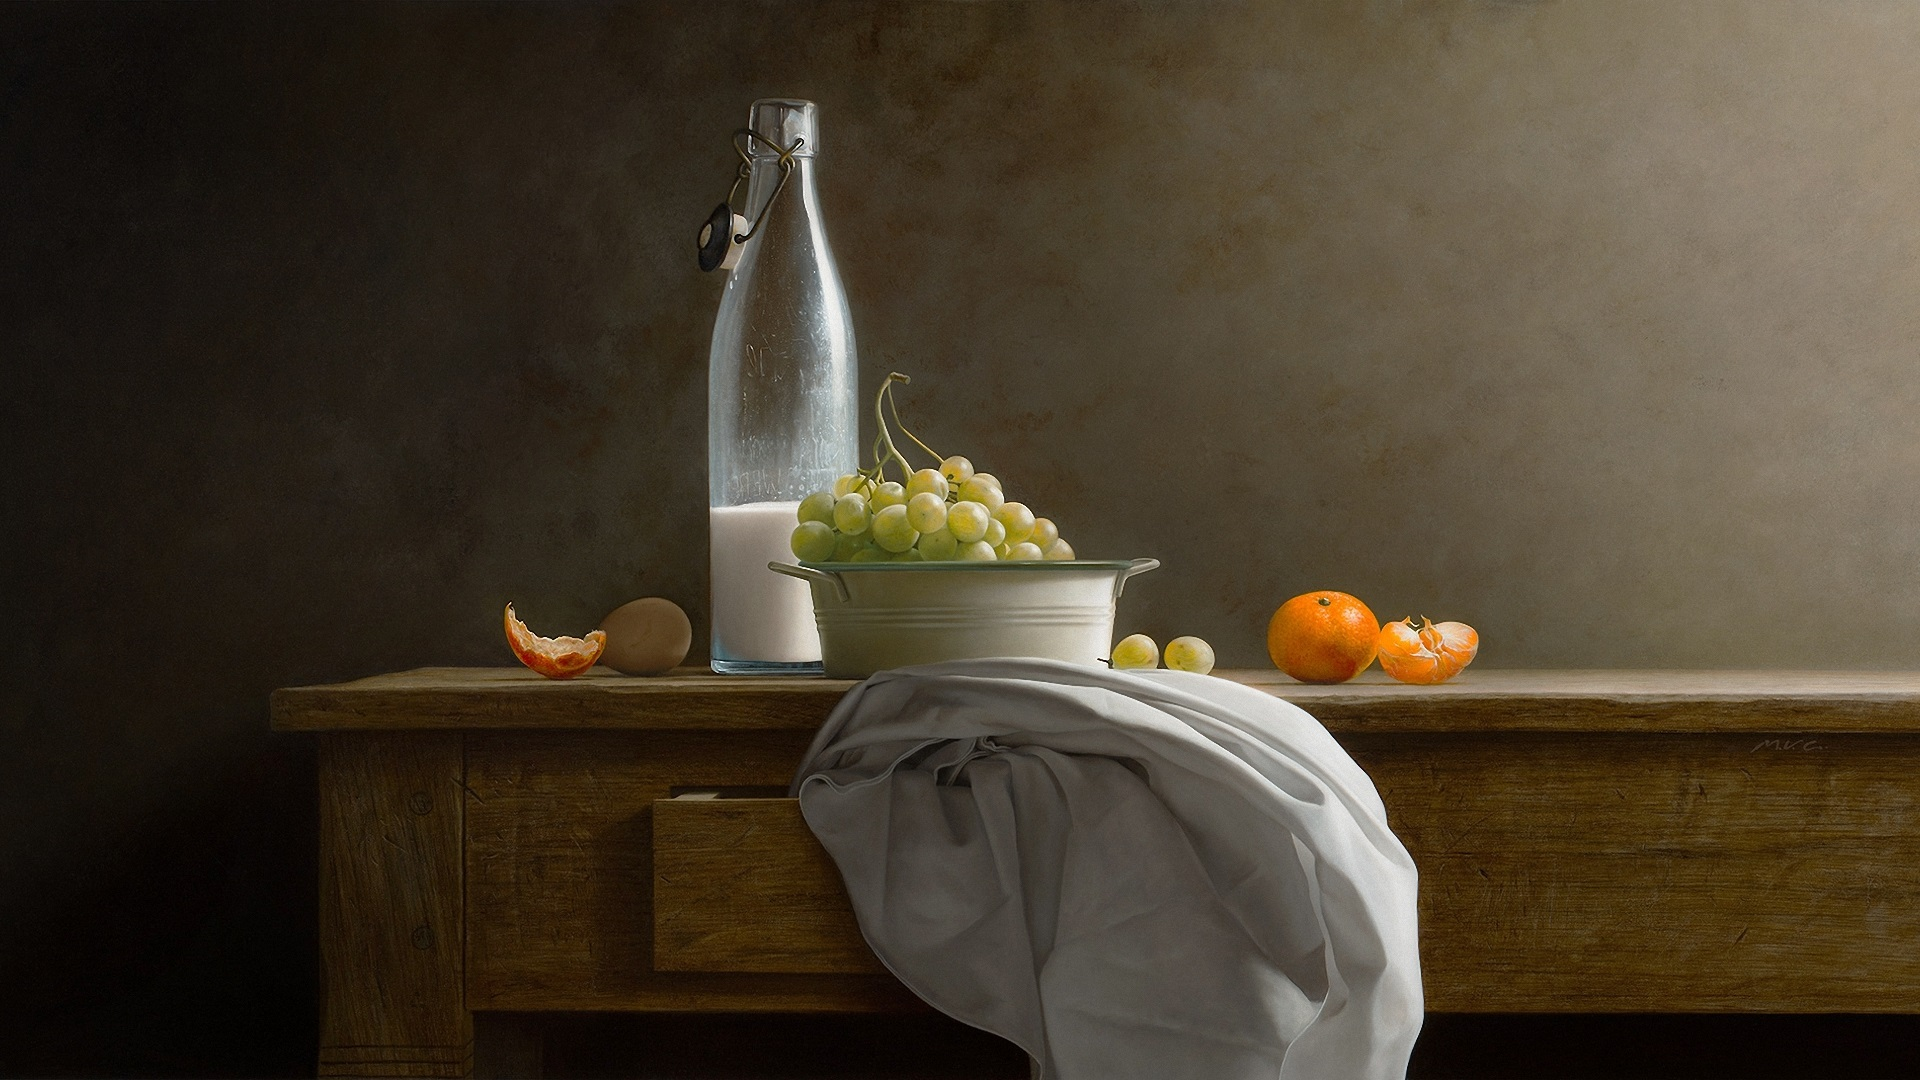 Wallpaper Grapes Milk Oranges Table 1920x1080 Full Hd 2k